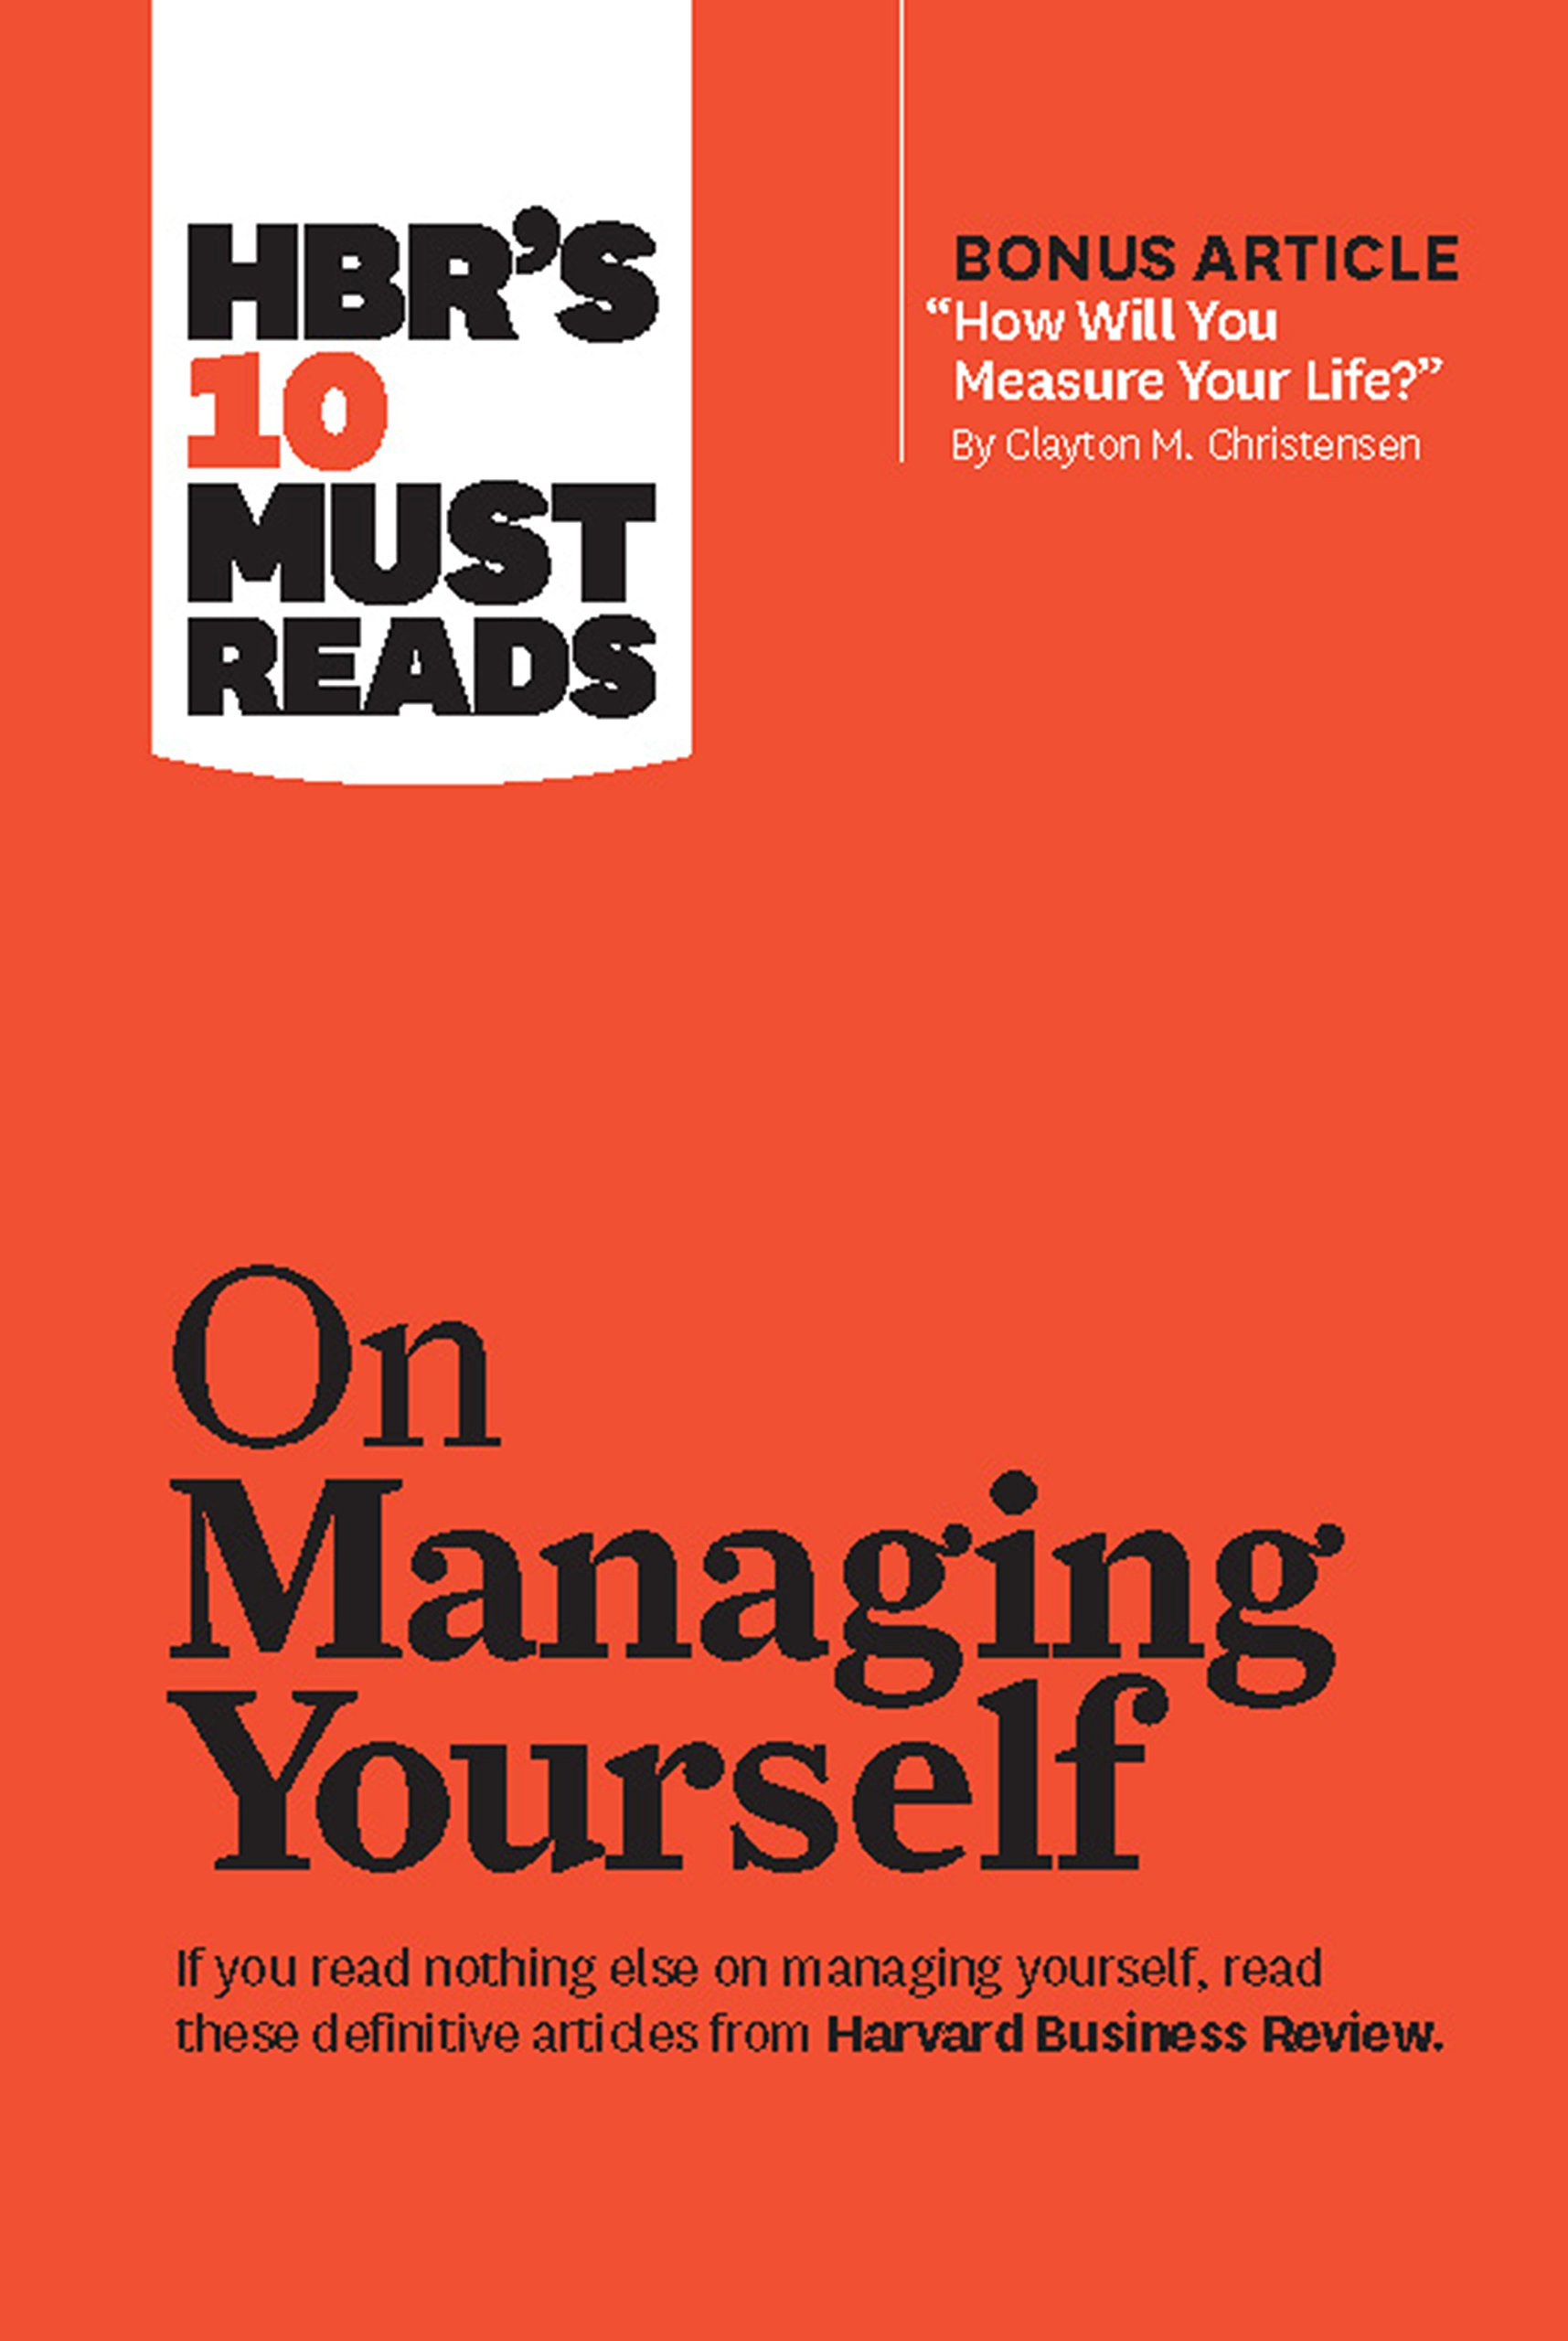 Buy Hbr's 10 Must Reads: On Managing Yourself Book Online At Low Prices In  India  Hbr's 10 Must Reads: On Managing Yourself Reviews & Ratings   Amazon